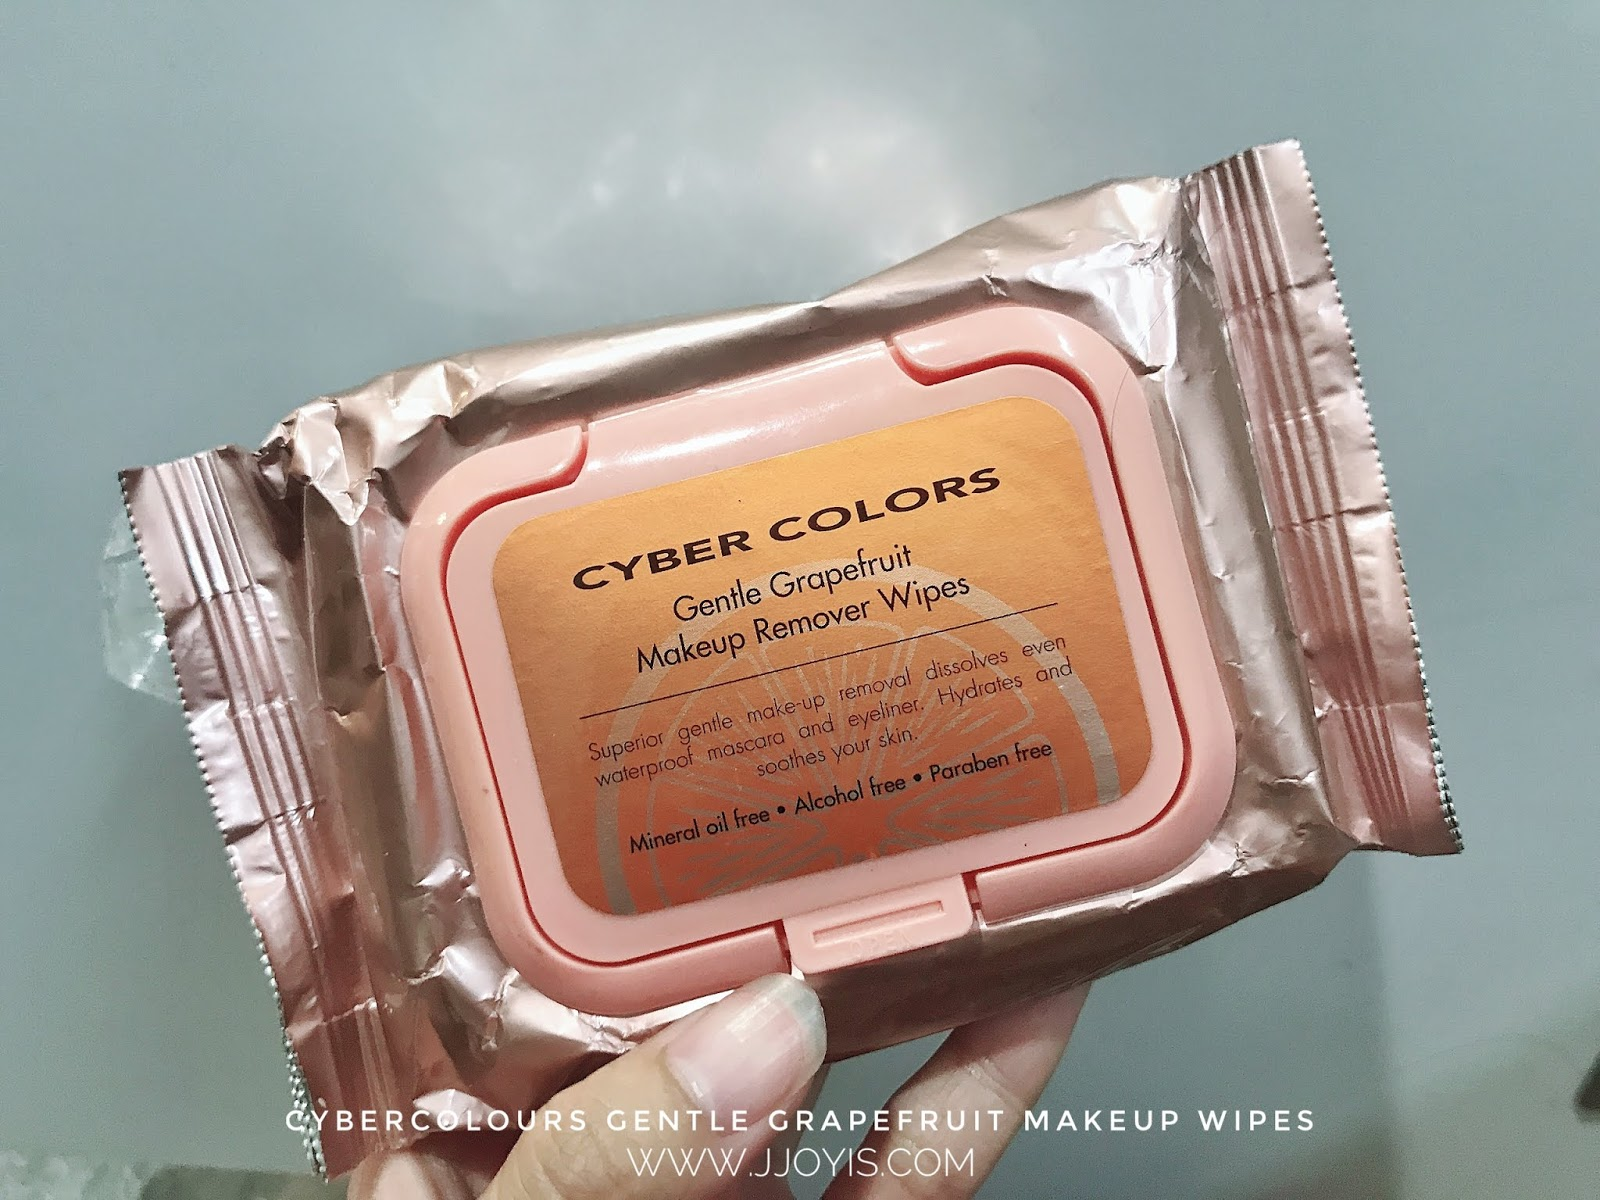 cybercolors make up wipes review